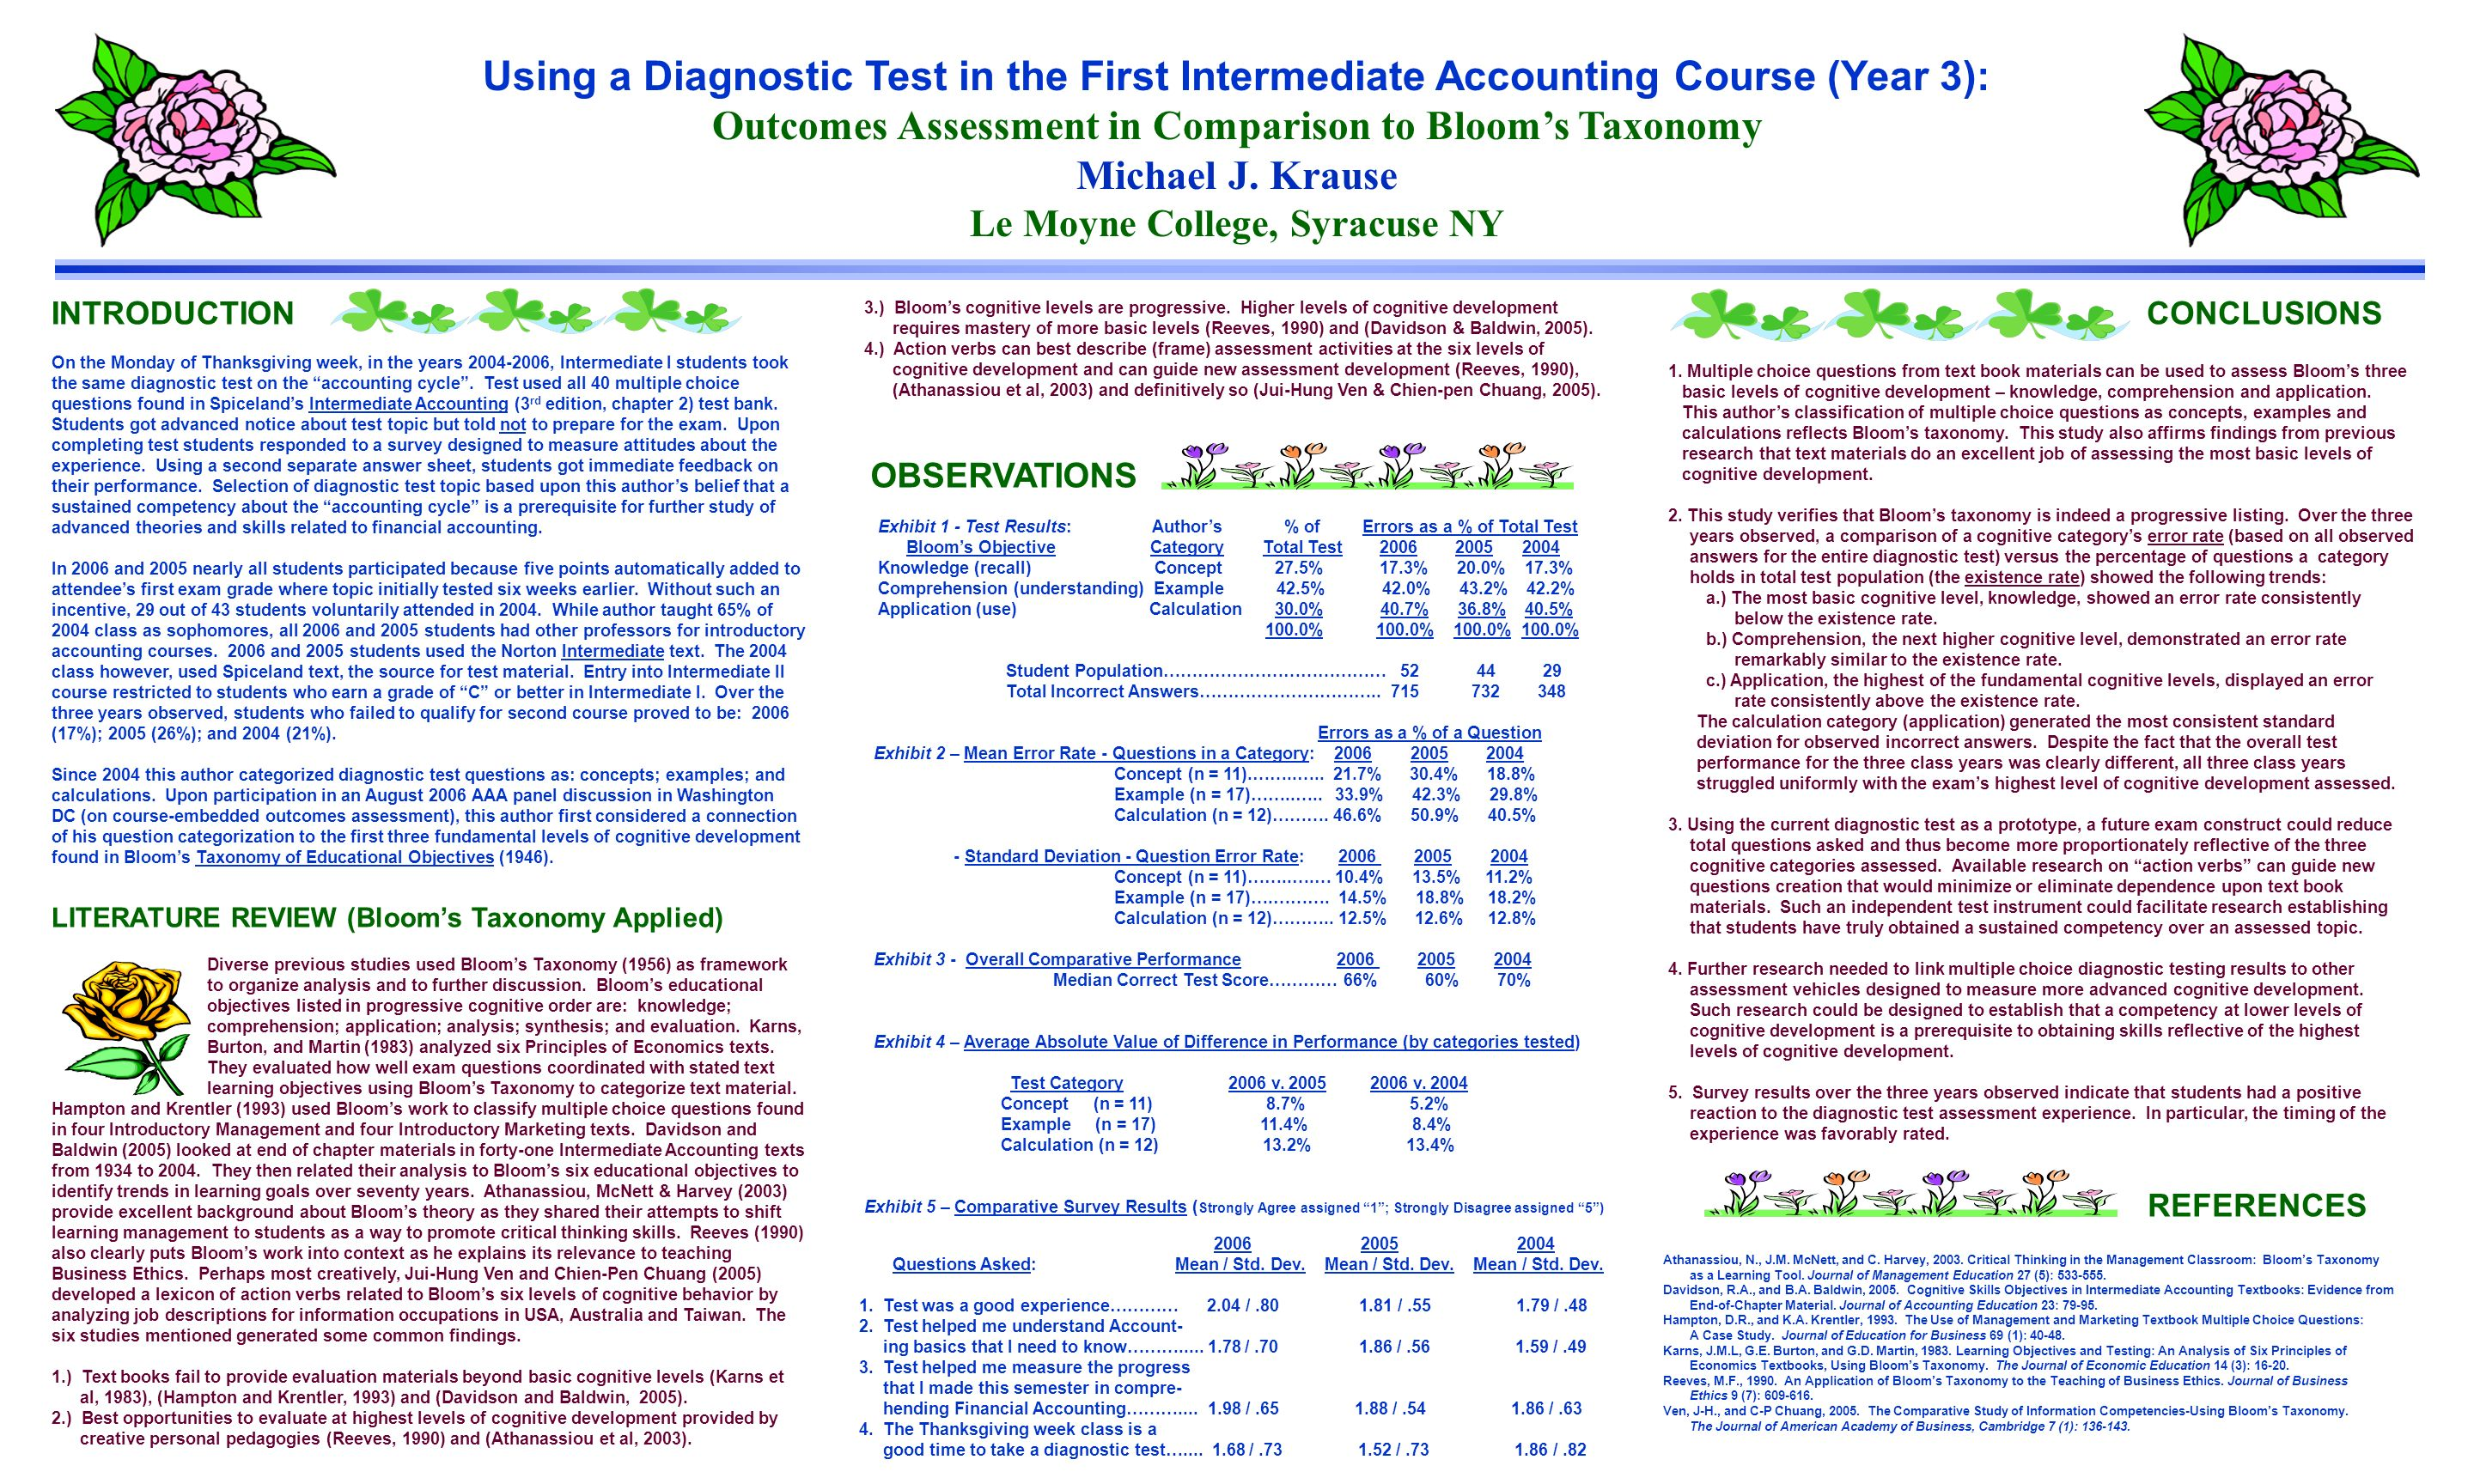 Using a Diagnostic Test in the First Intermediate Accounting Course (Year 3): Outcomes Assessment in Comparison to Blooms Taxonomy Michael J.